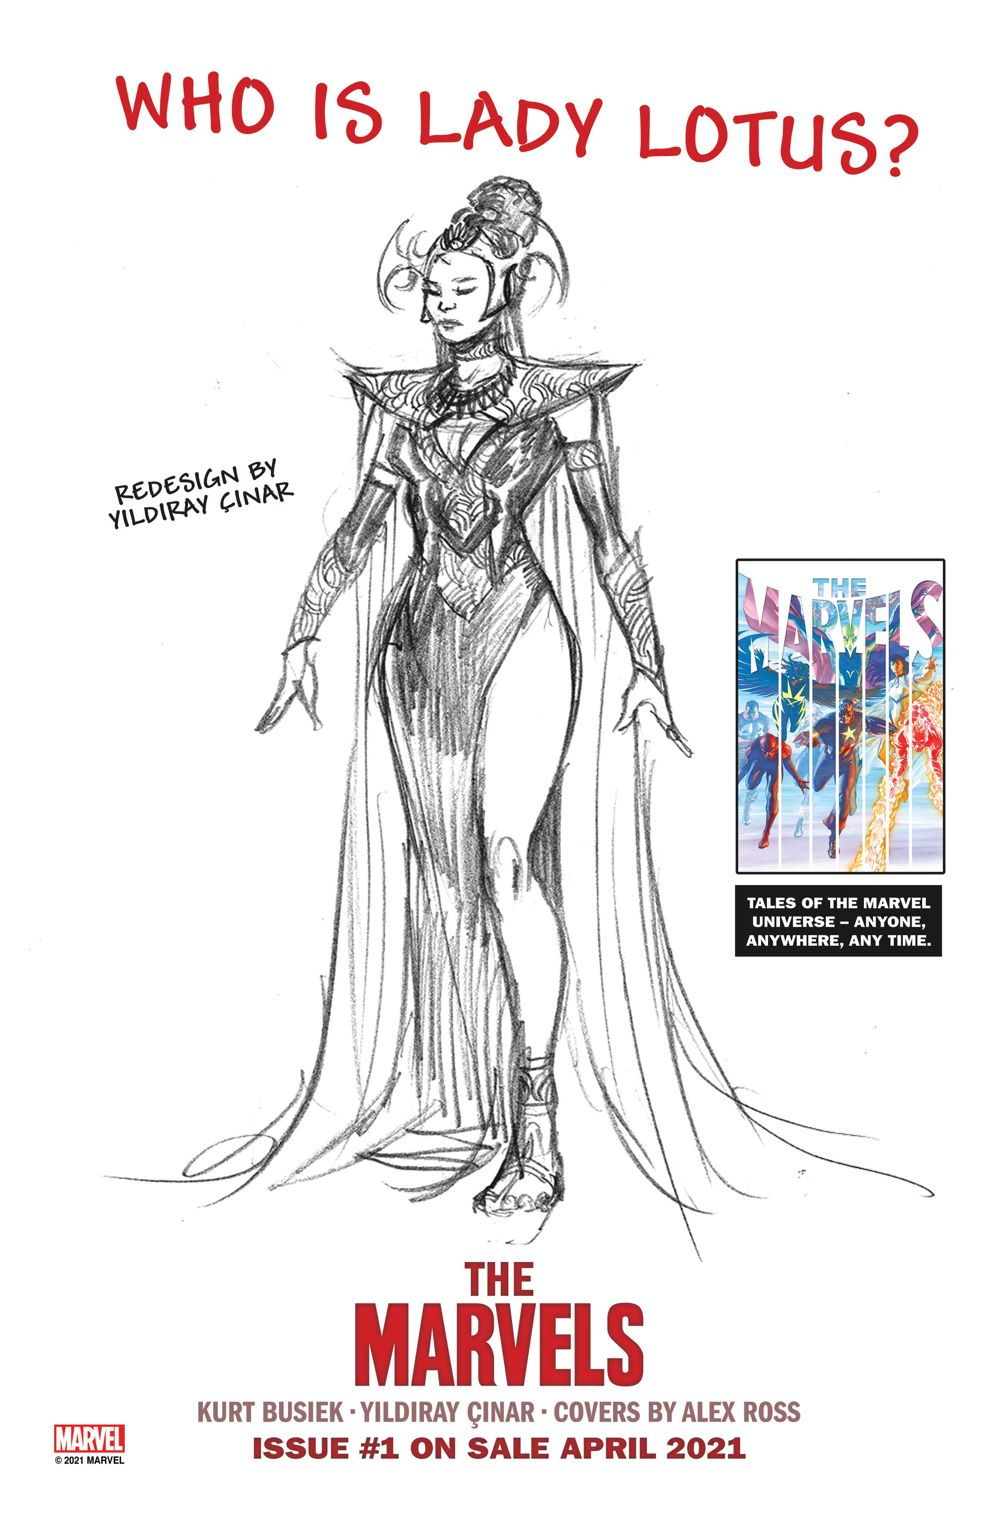 TheMarvels-LadyLotus-v2 THE MARVELS #1 will introduce new heroes and villains